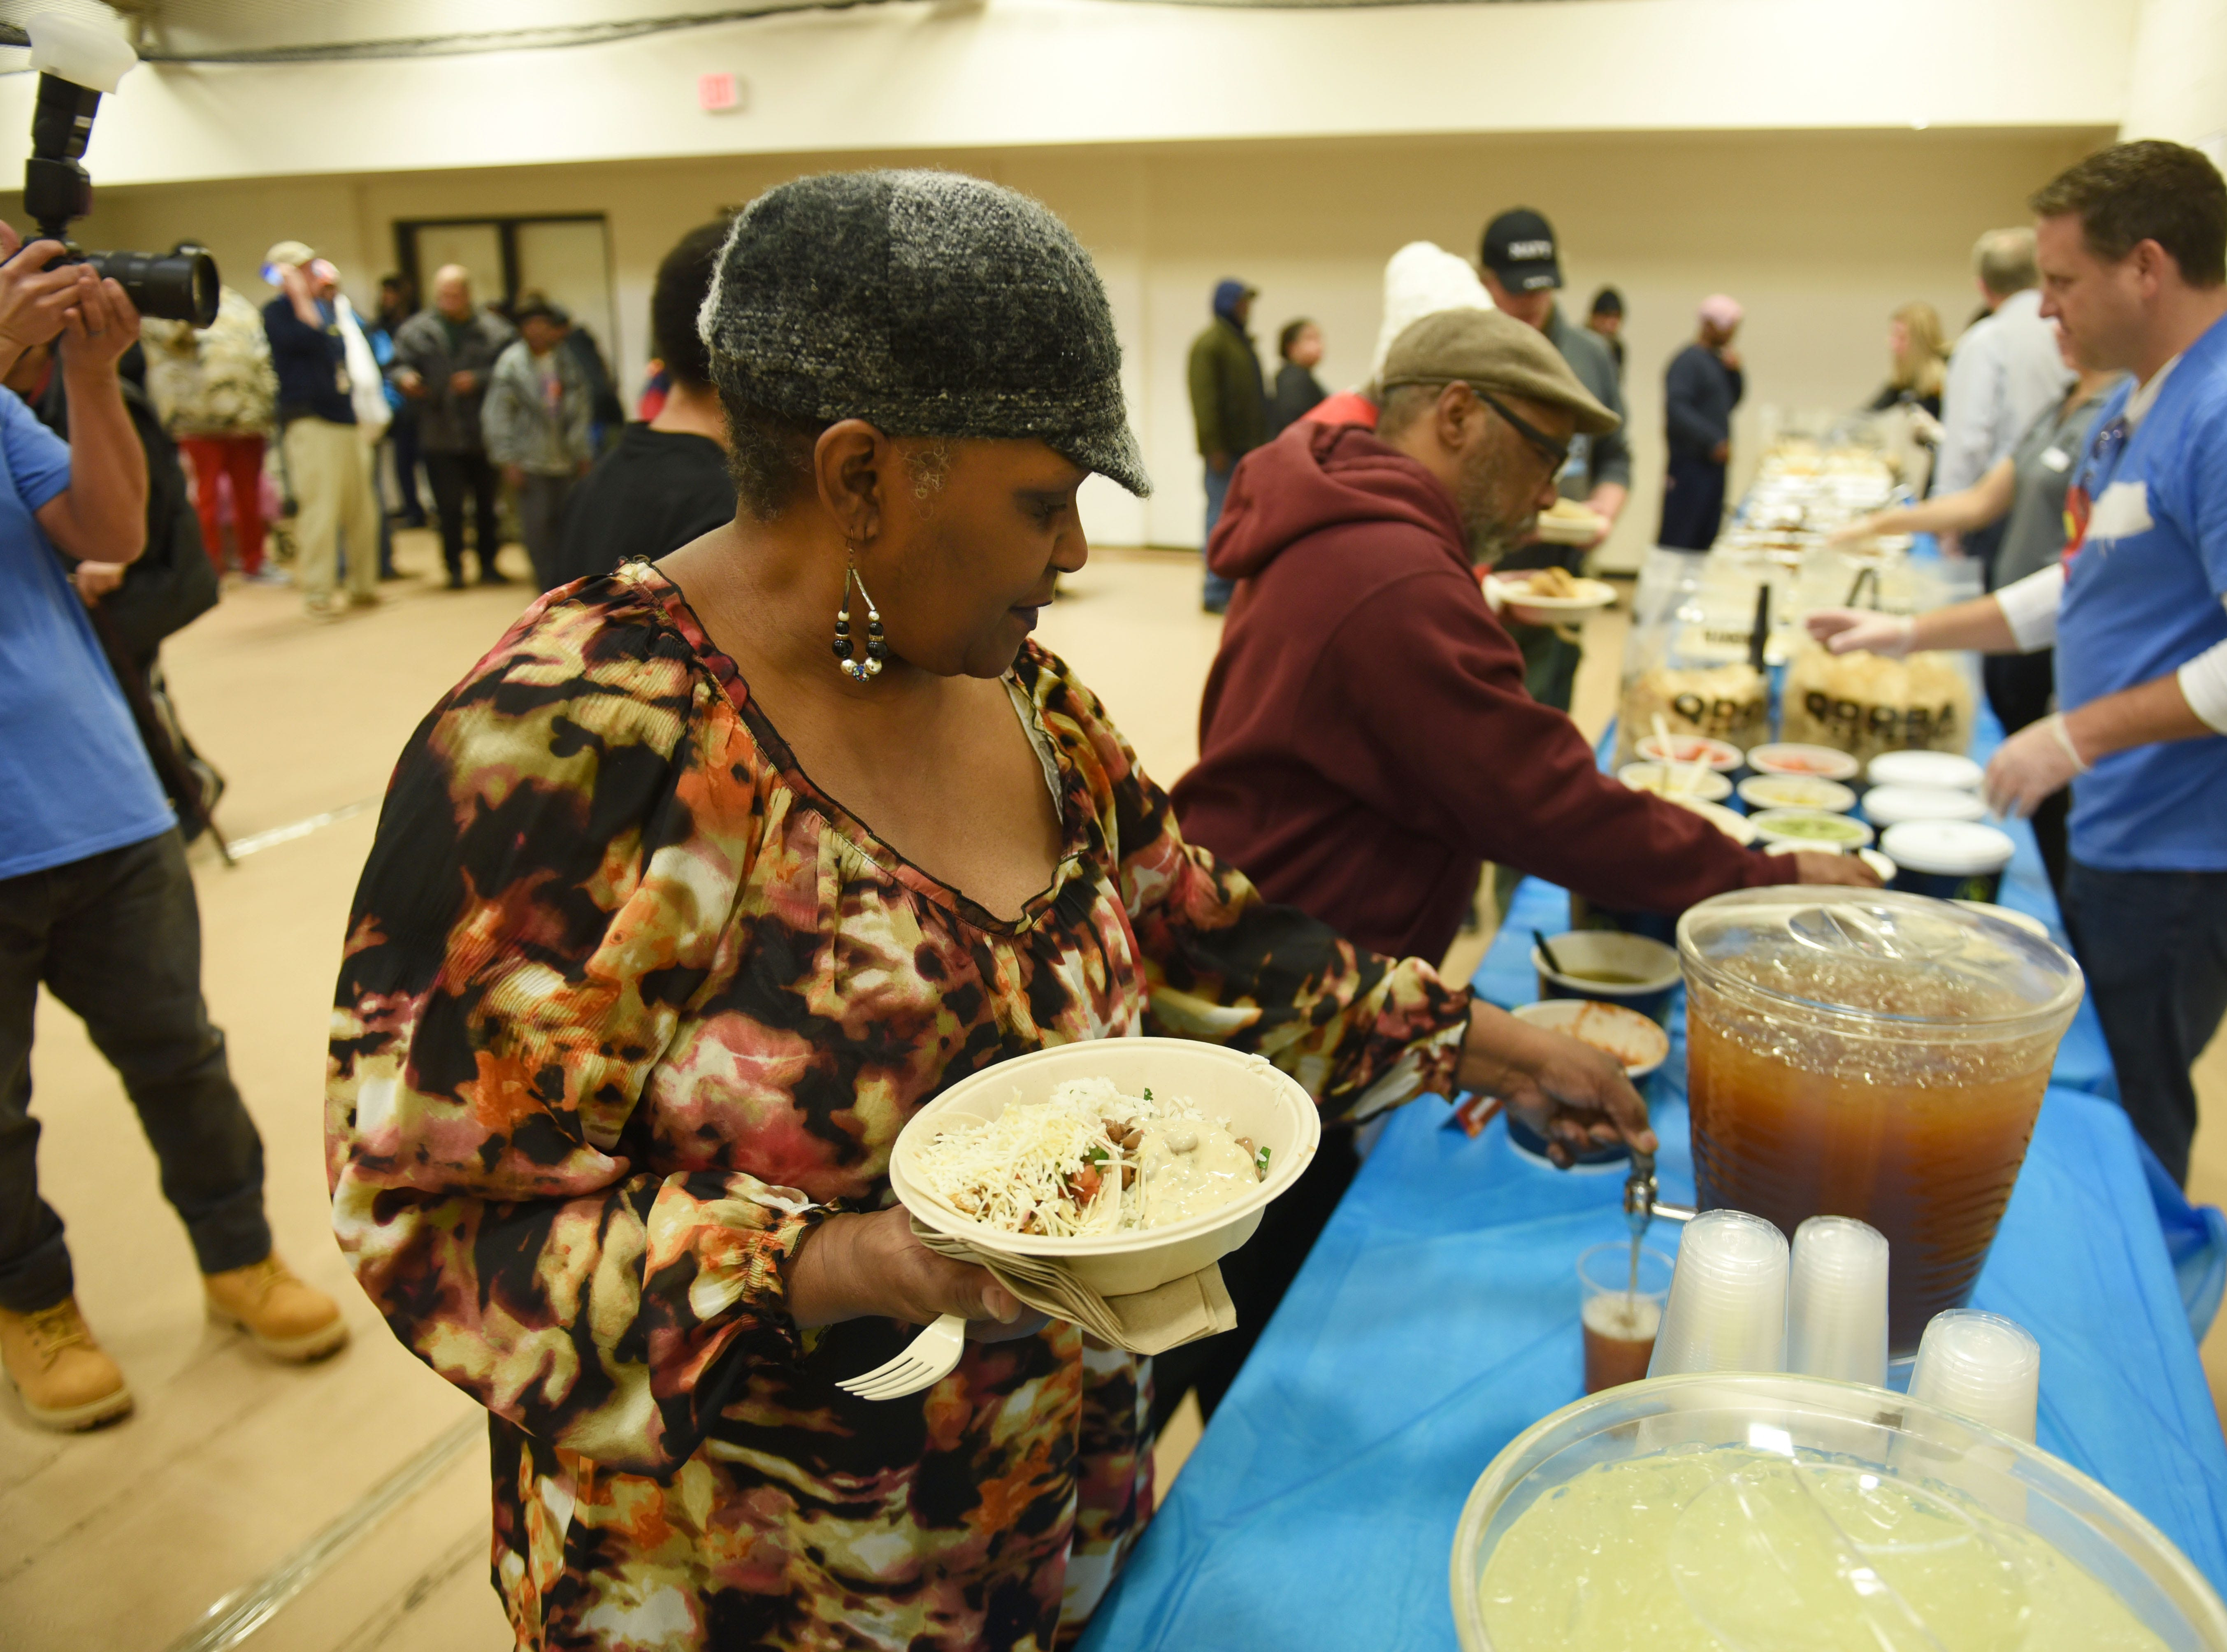 Betty Washington gets a beverage with her meal courtesy of Qdoba at Neighborhood Services Organization's offices in Detroit for Giving Tuesday on November 27, 2018.